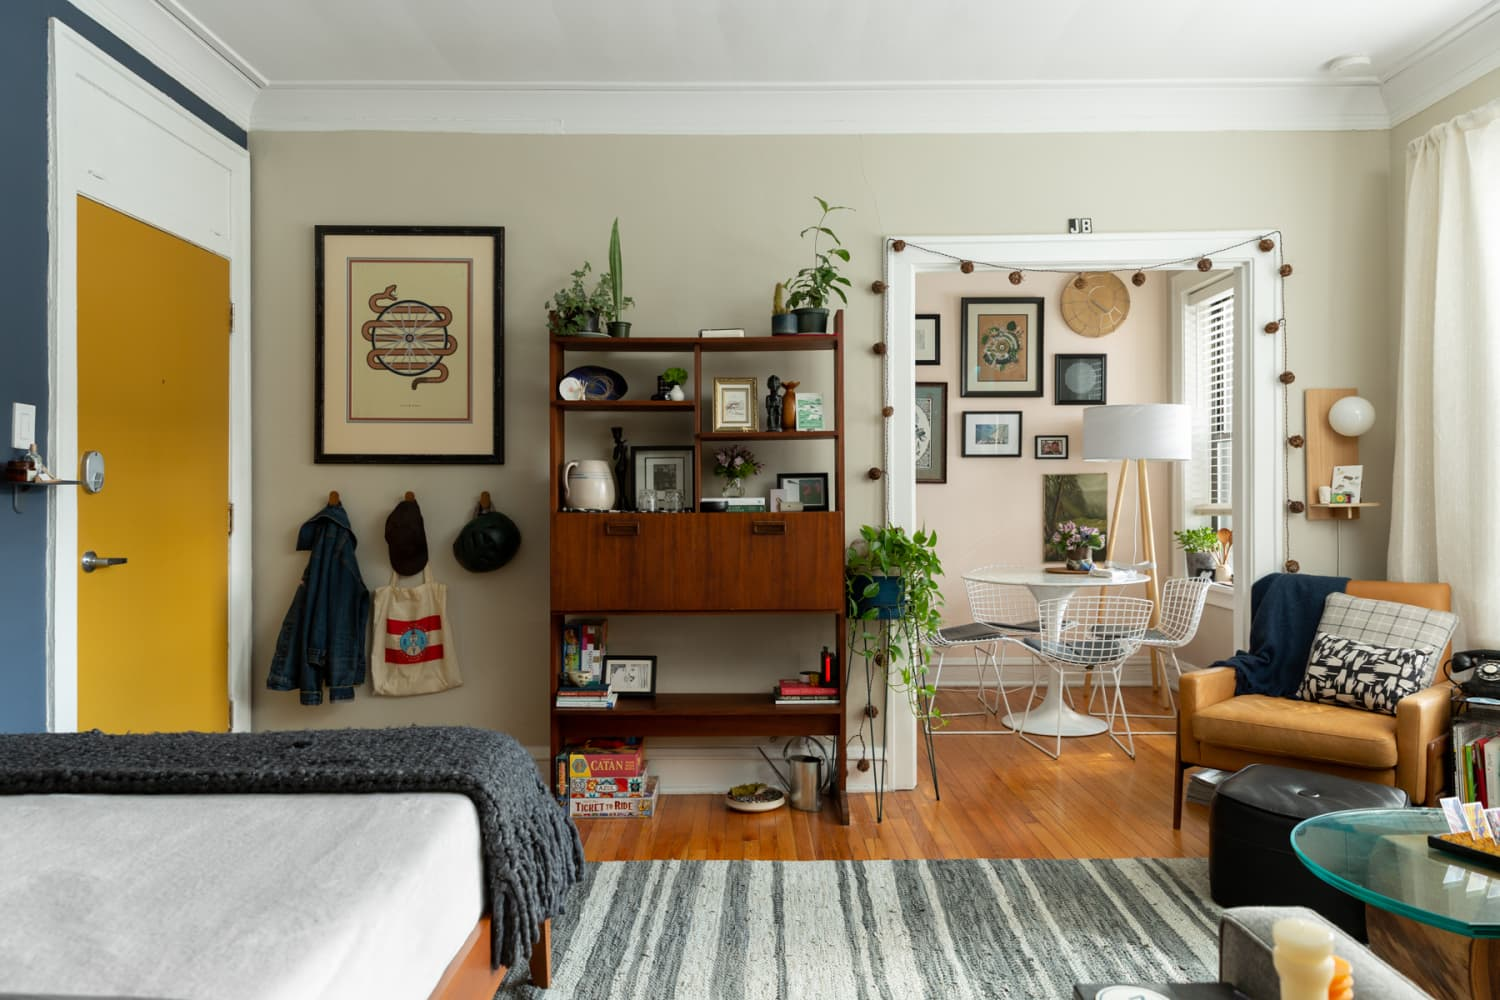 A Stylish 420-Square-Foot Chicago Studio Shows How to Use Every Bit of Space Wisely